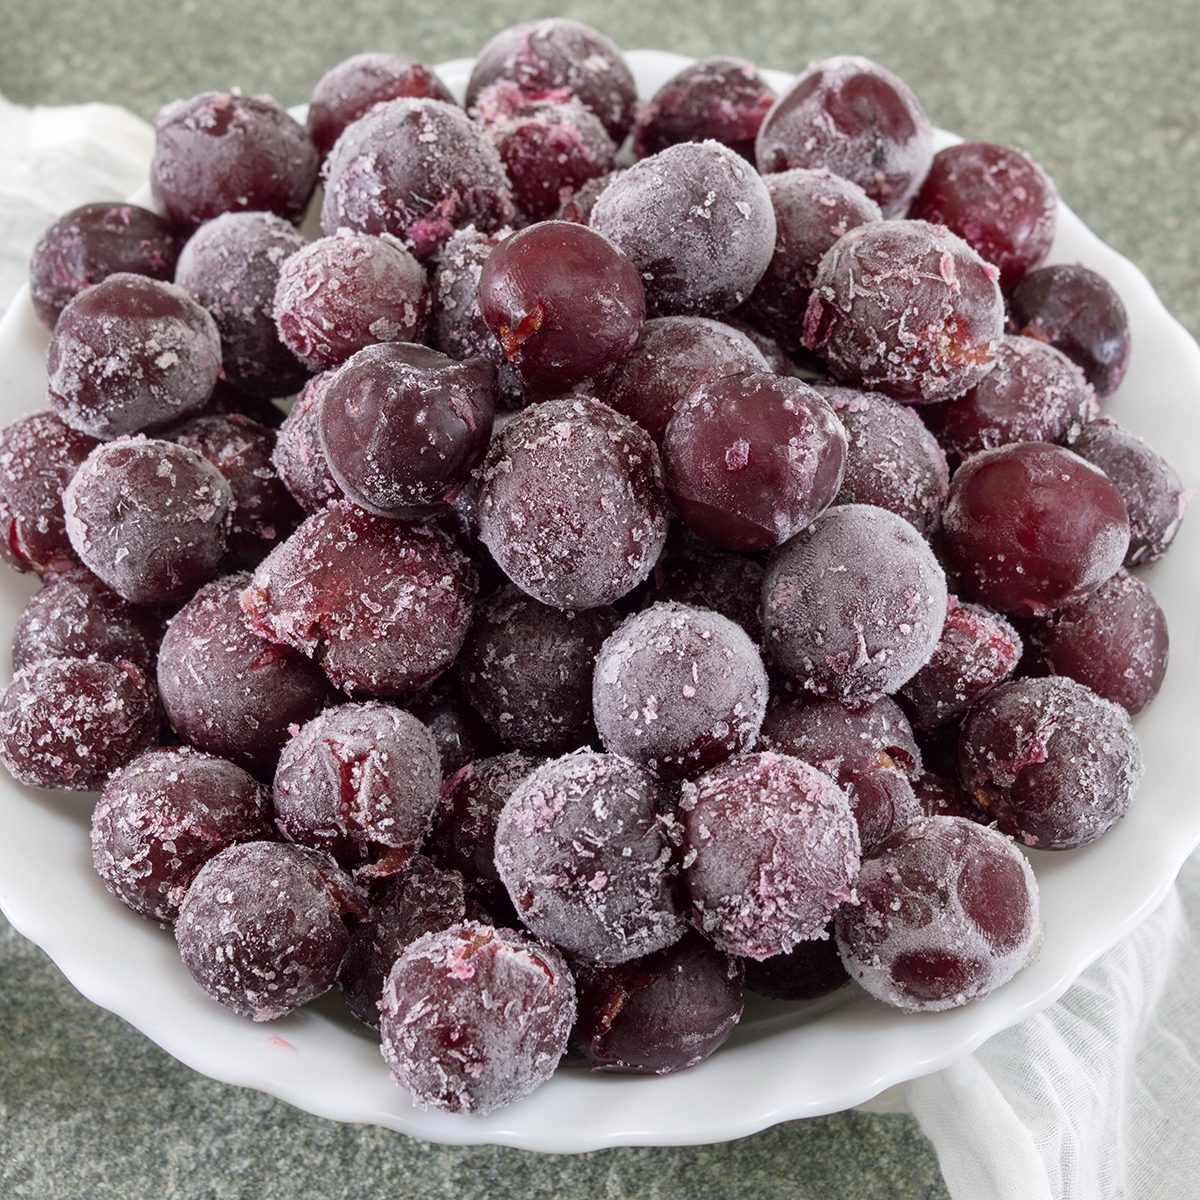 Frozen grapes served in a white bowl